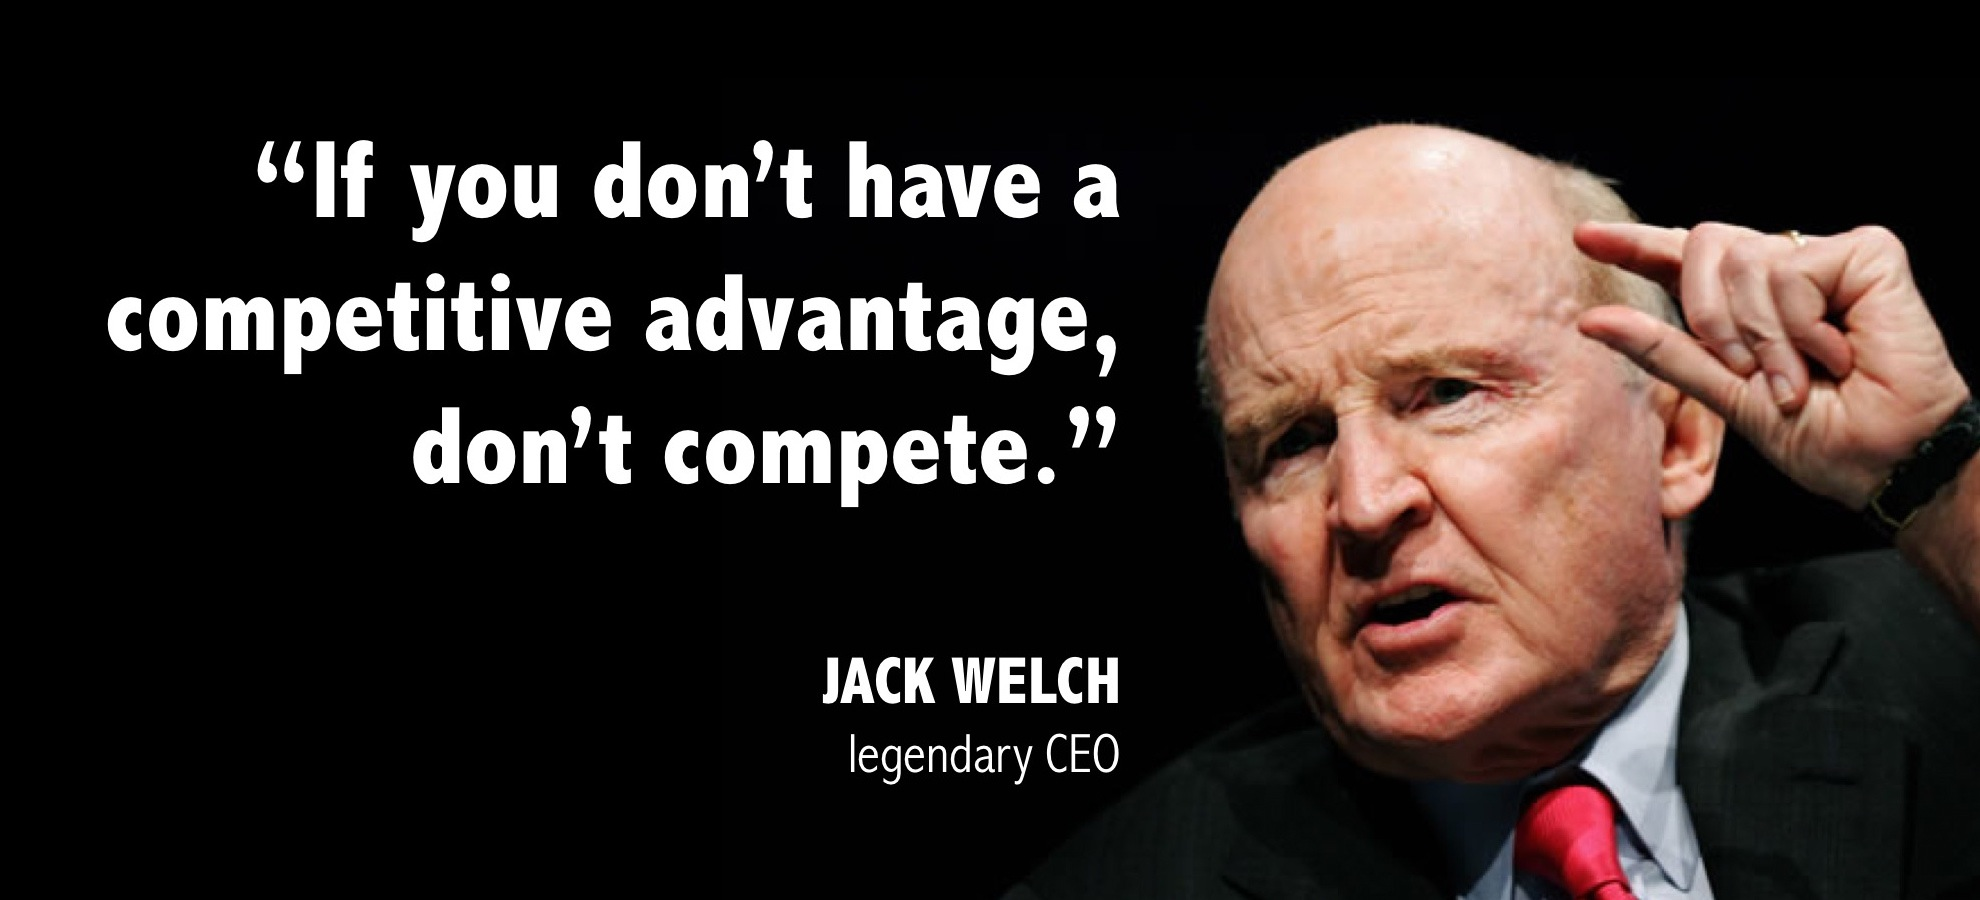 leadership jack welch The jack welch management institute (jwmi) launched a human resources leadership concentration for its top-ranked online mba program.